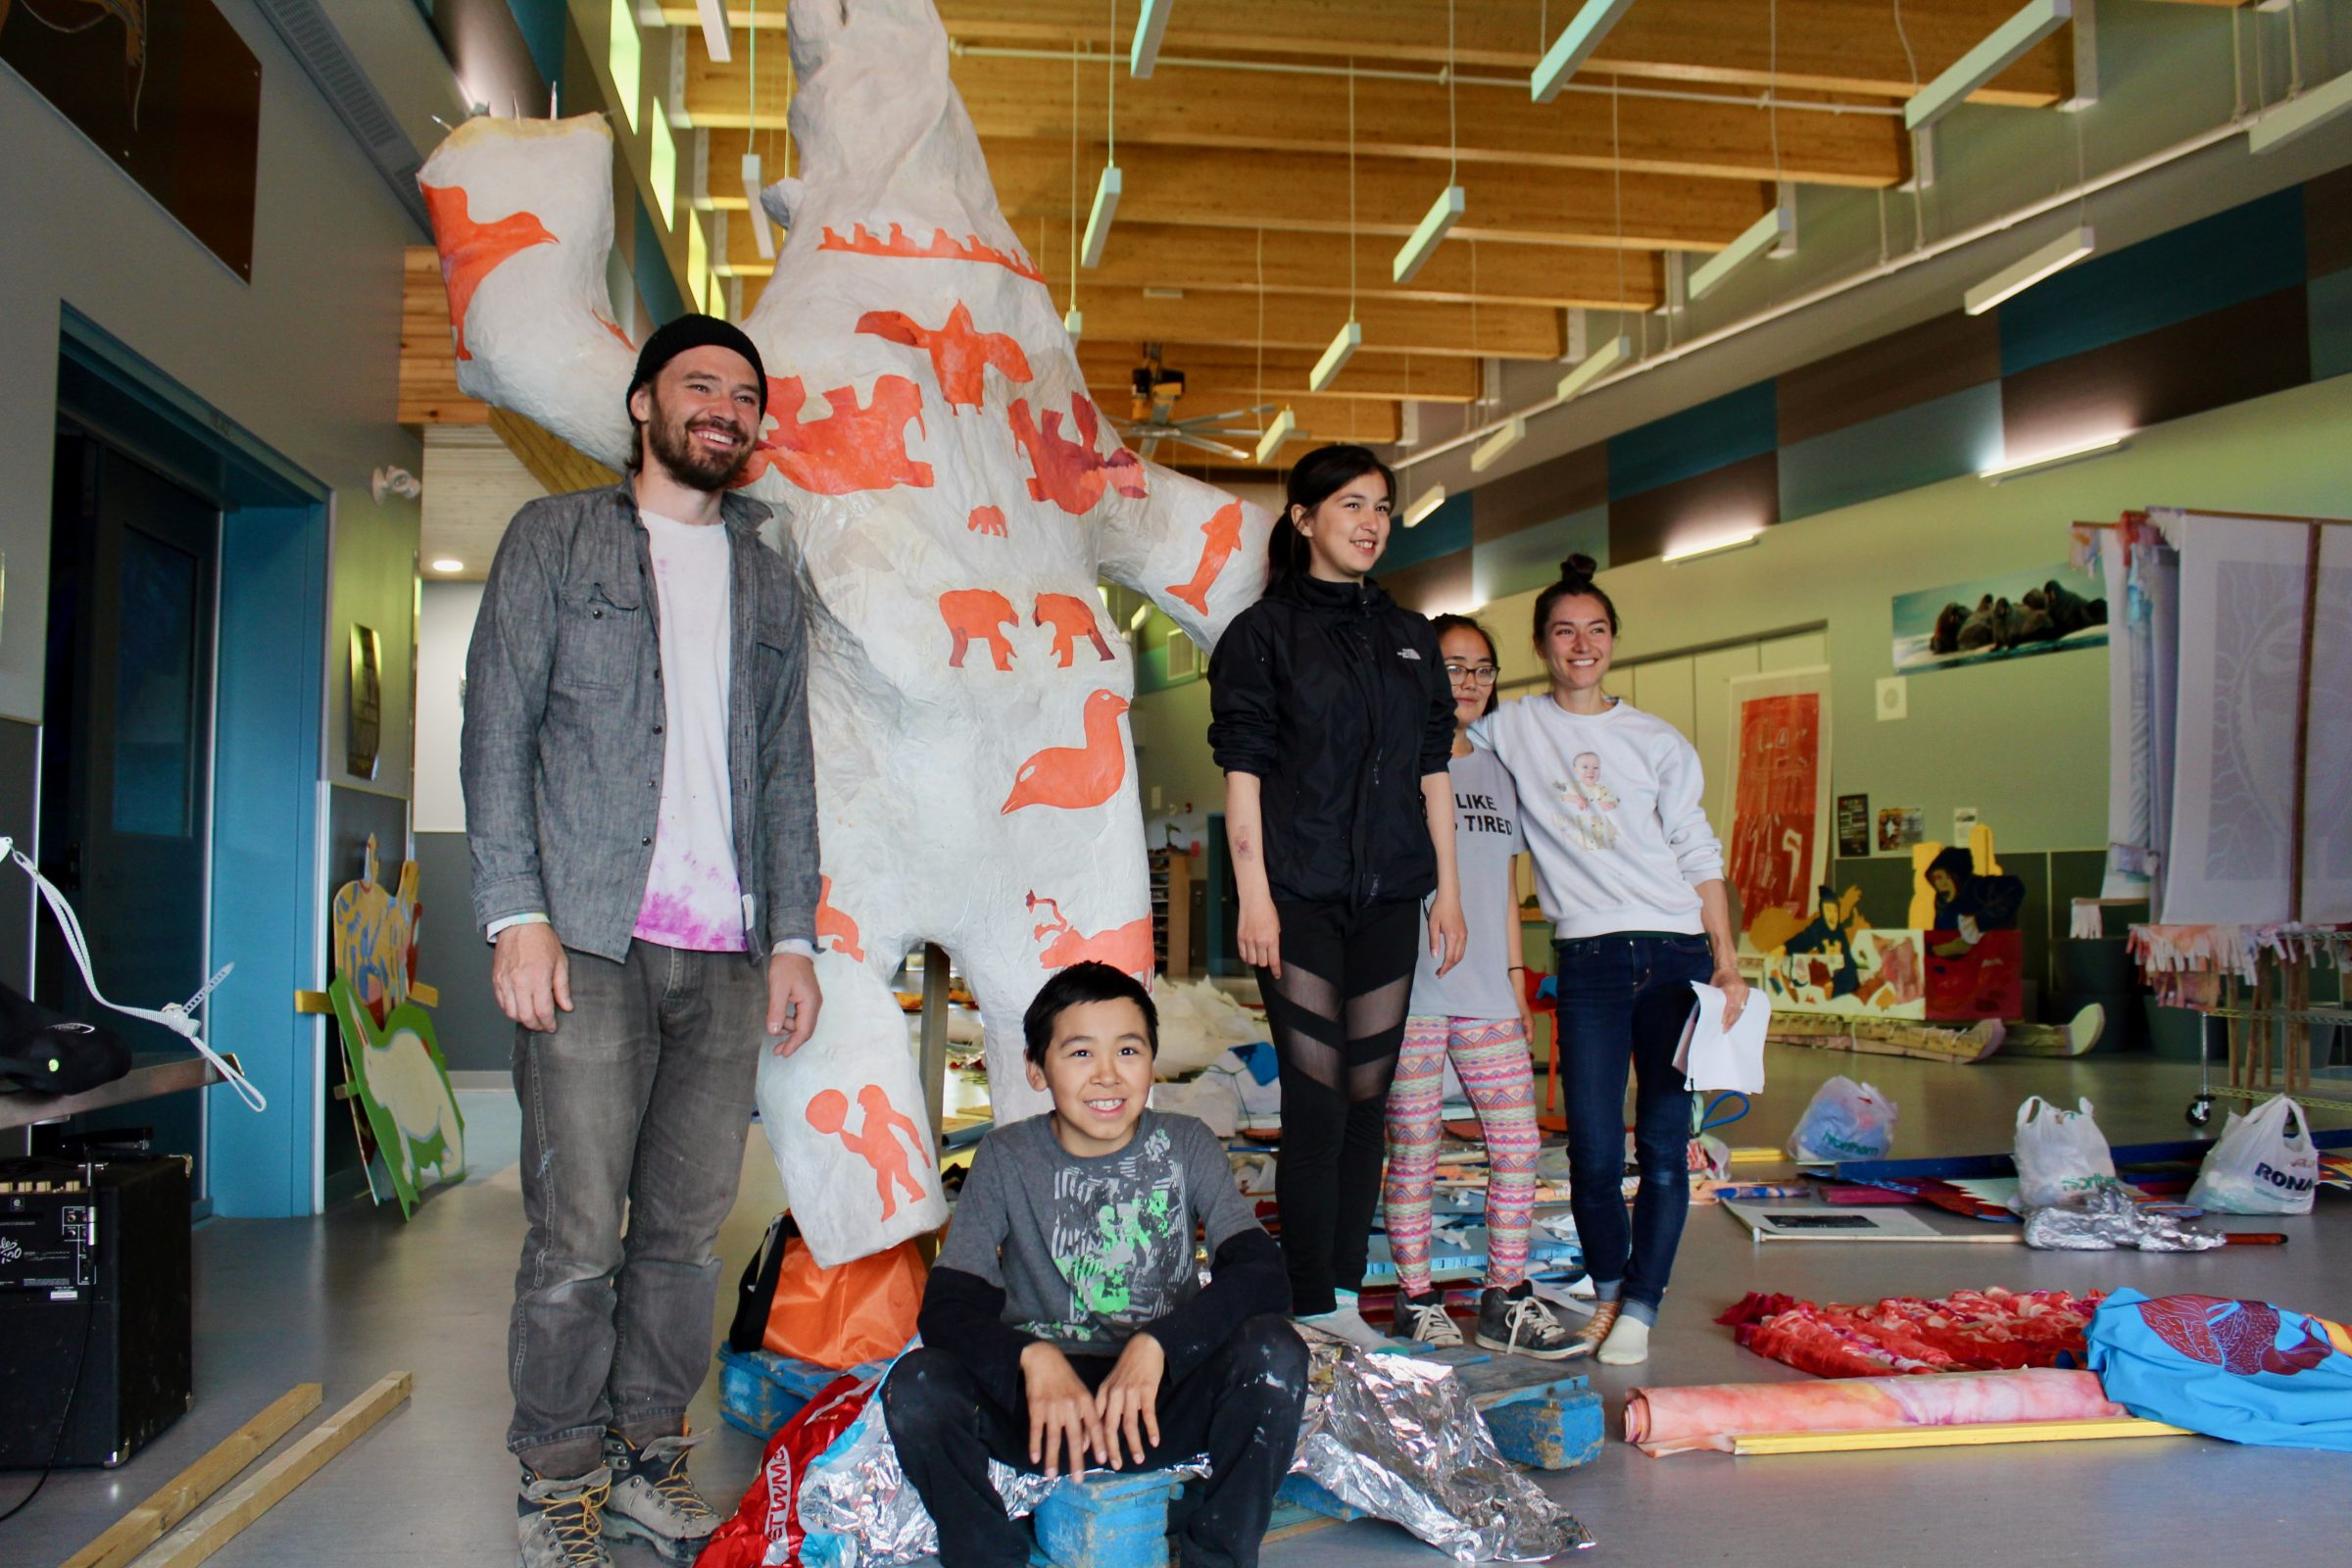 Cape Dorset youth showcase art in parade around town